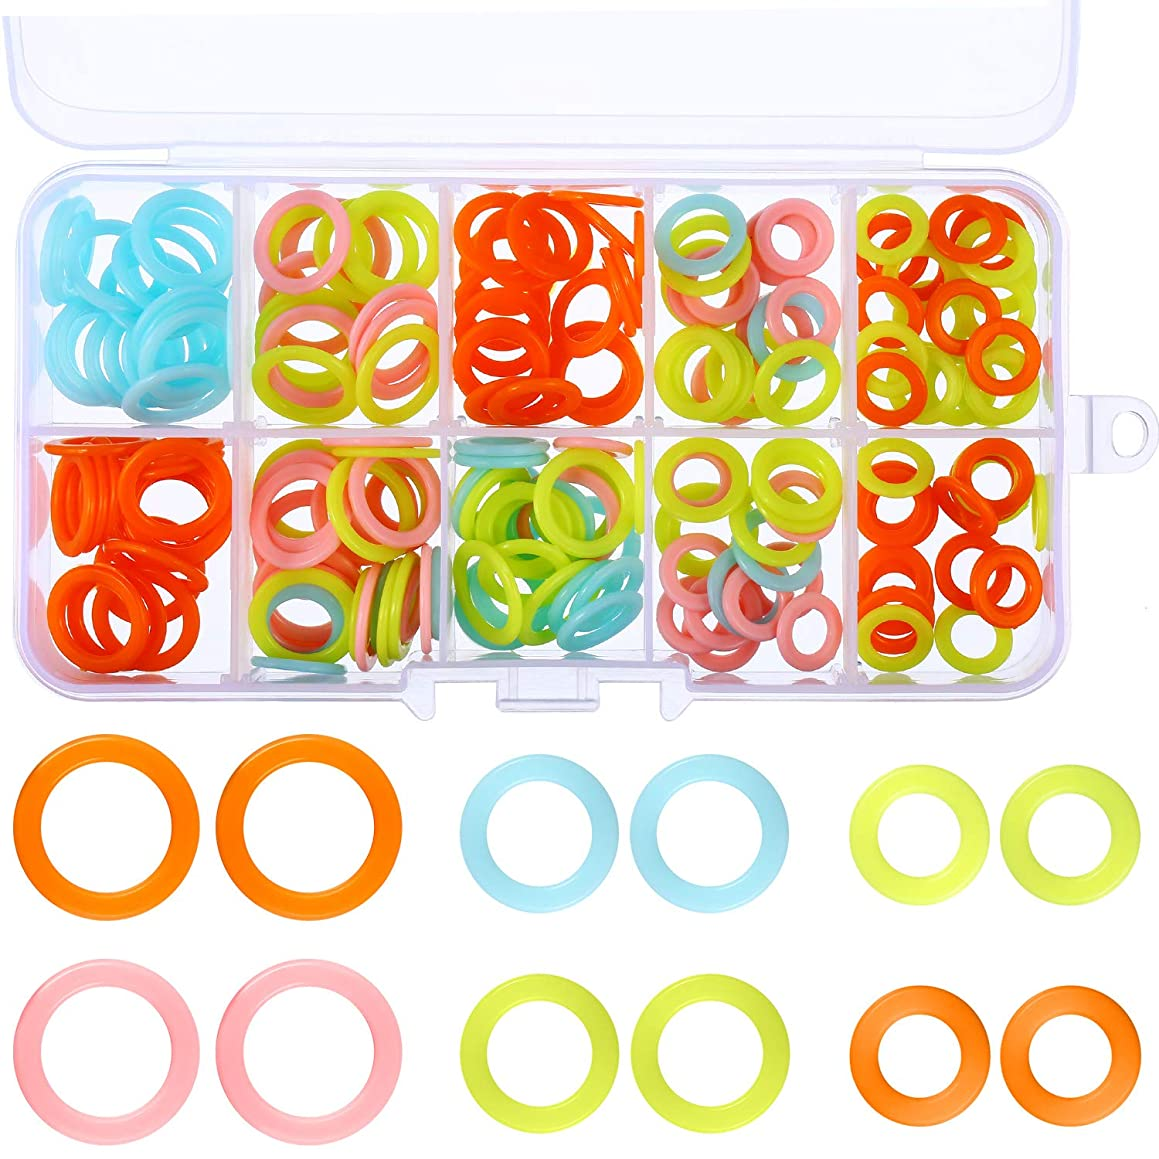 Blulu 200 Pieces Knitting Marker Rings Stitch Rings Markers Crochet Locking with Plastic Storage Box, 3 Sizes, Assorted Colors